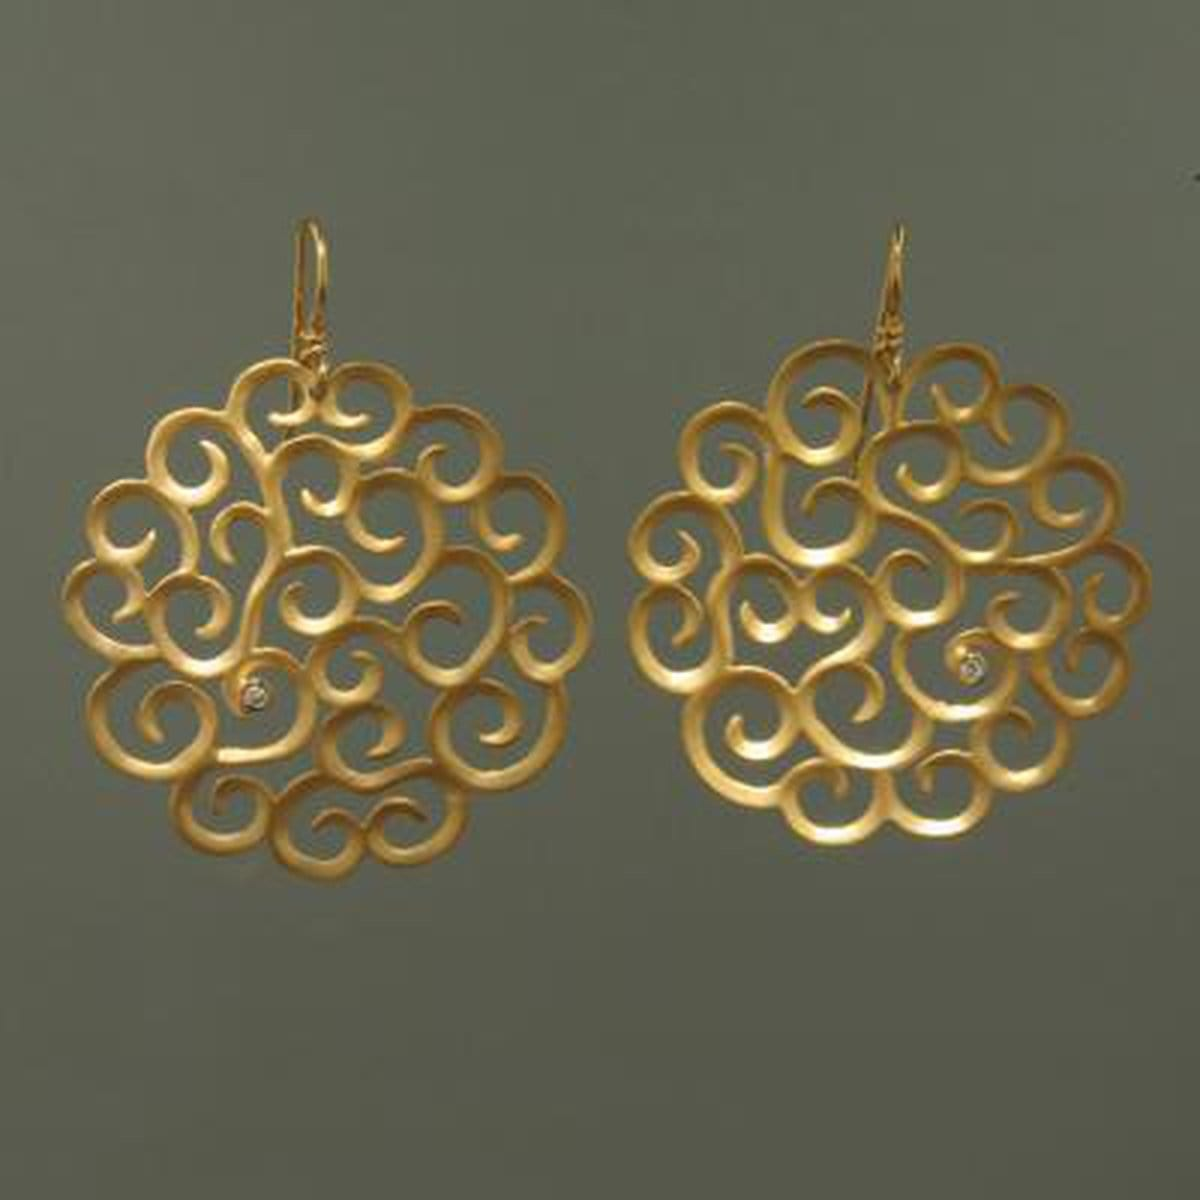 Marika Diamond & 14k Gold Earrings - M2985